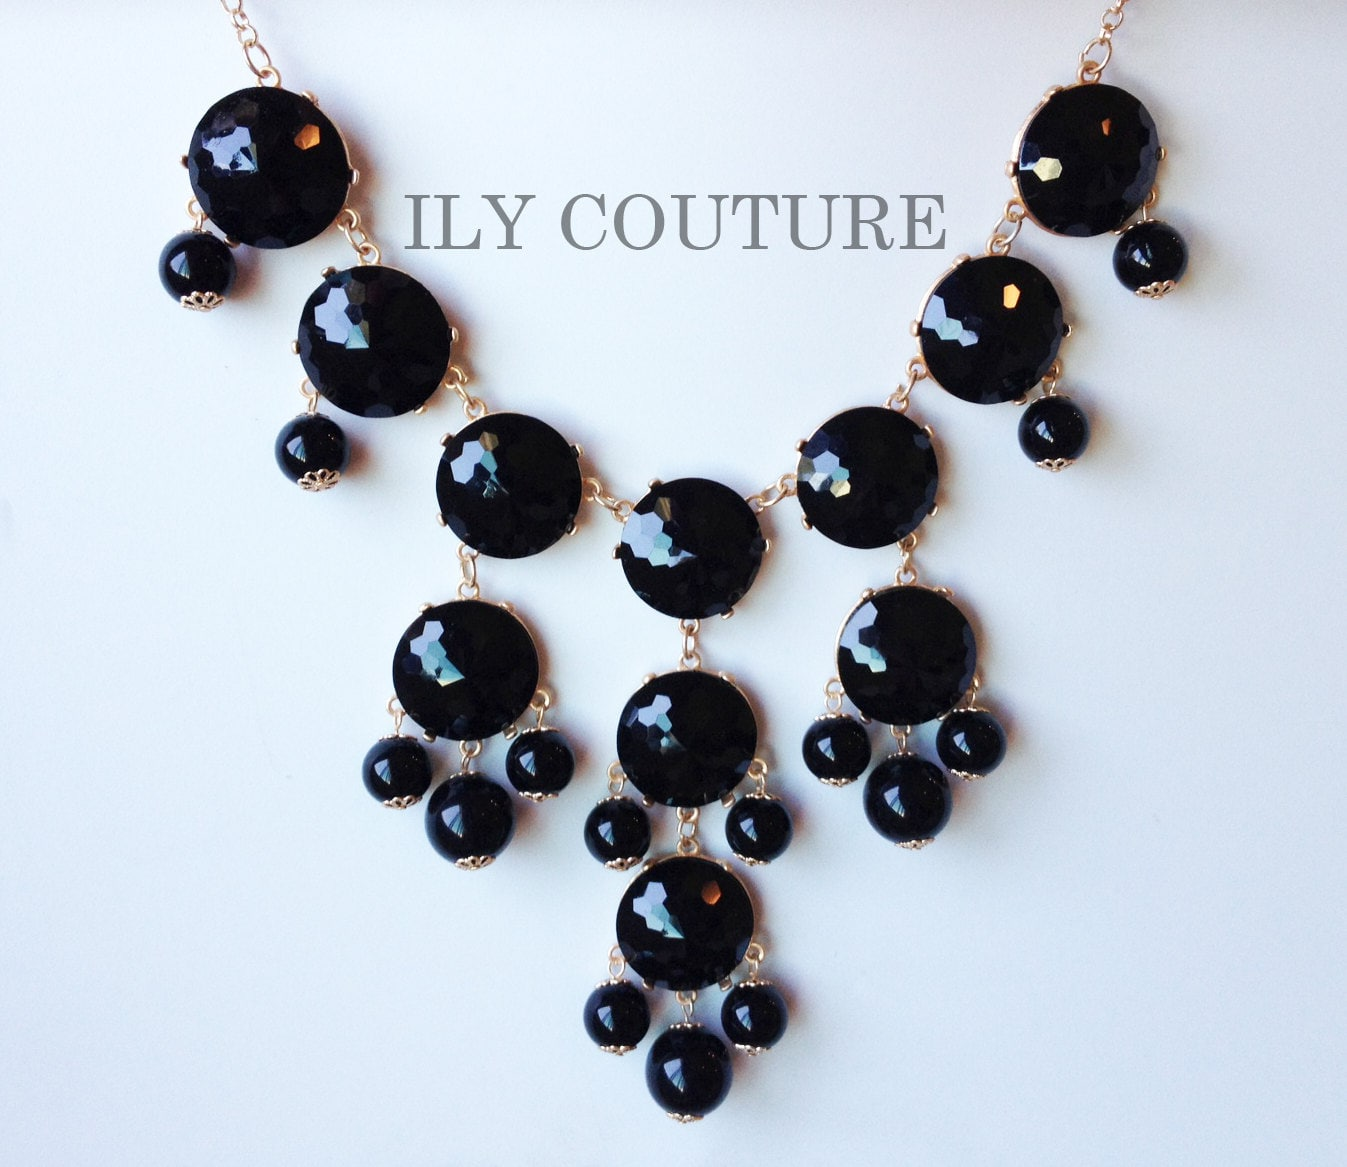 Black Bubble Statement Necklace similar to J. Crew style